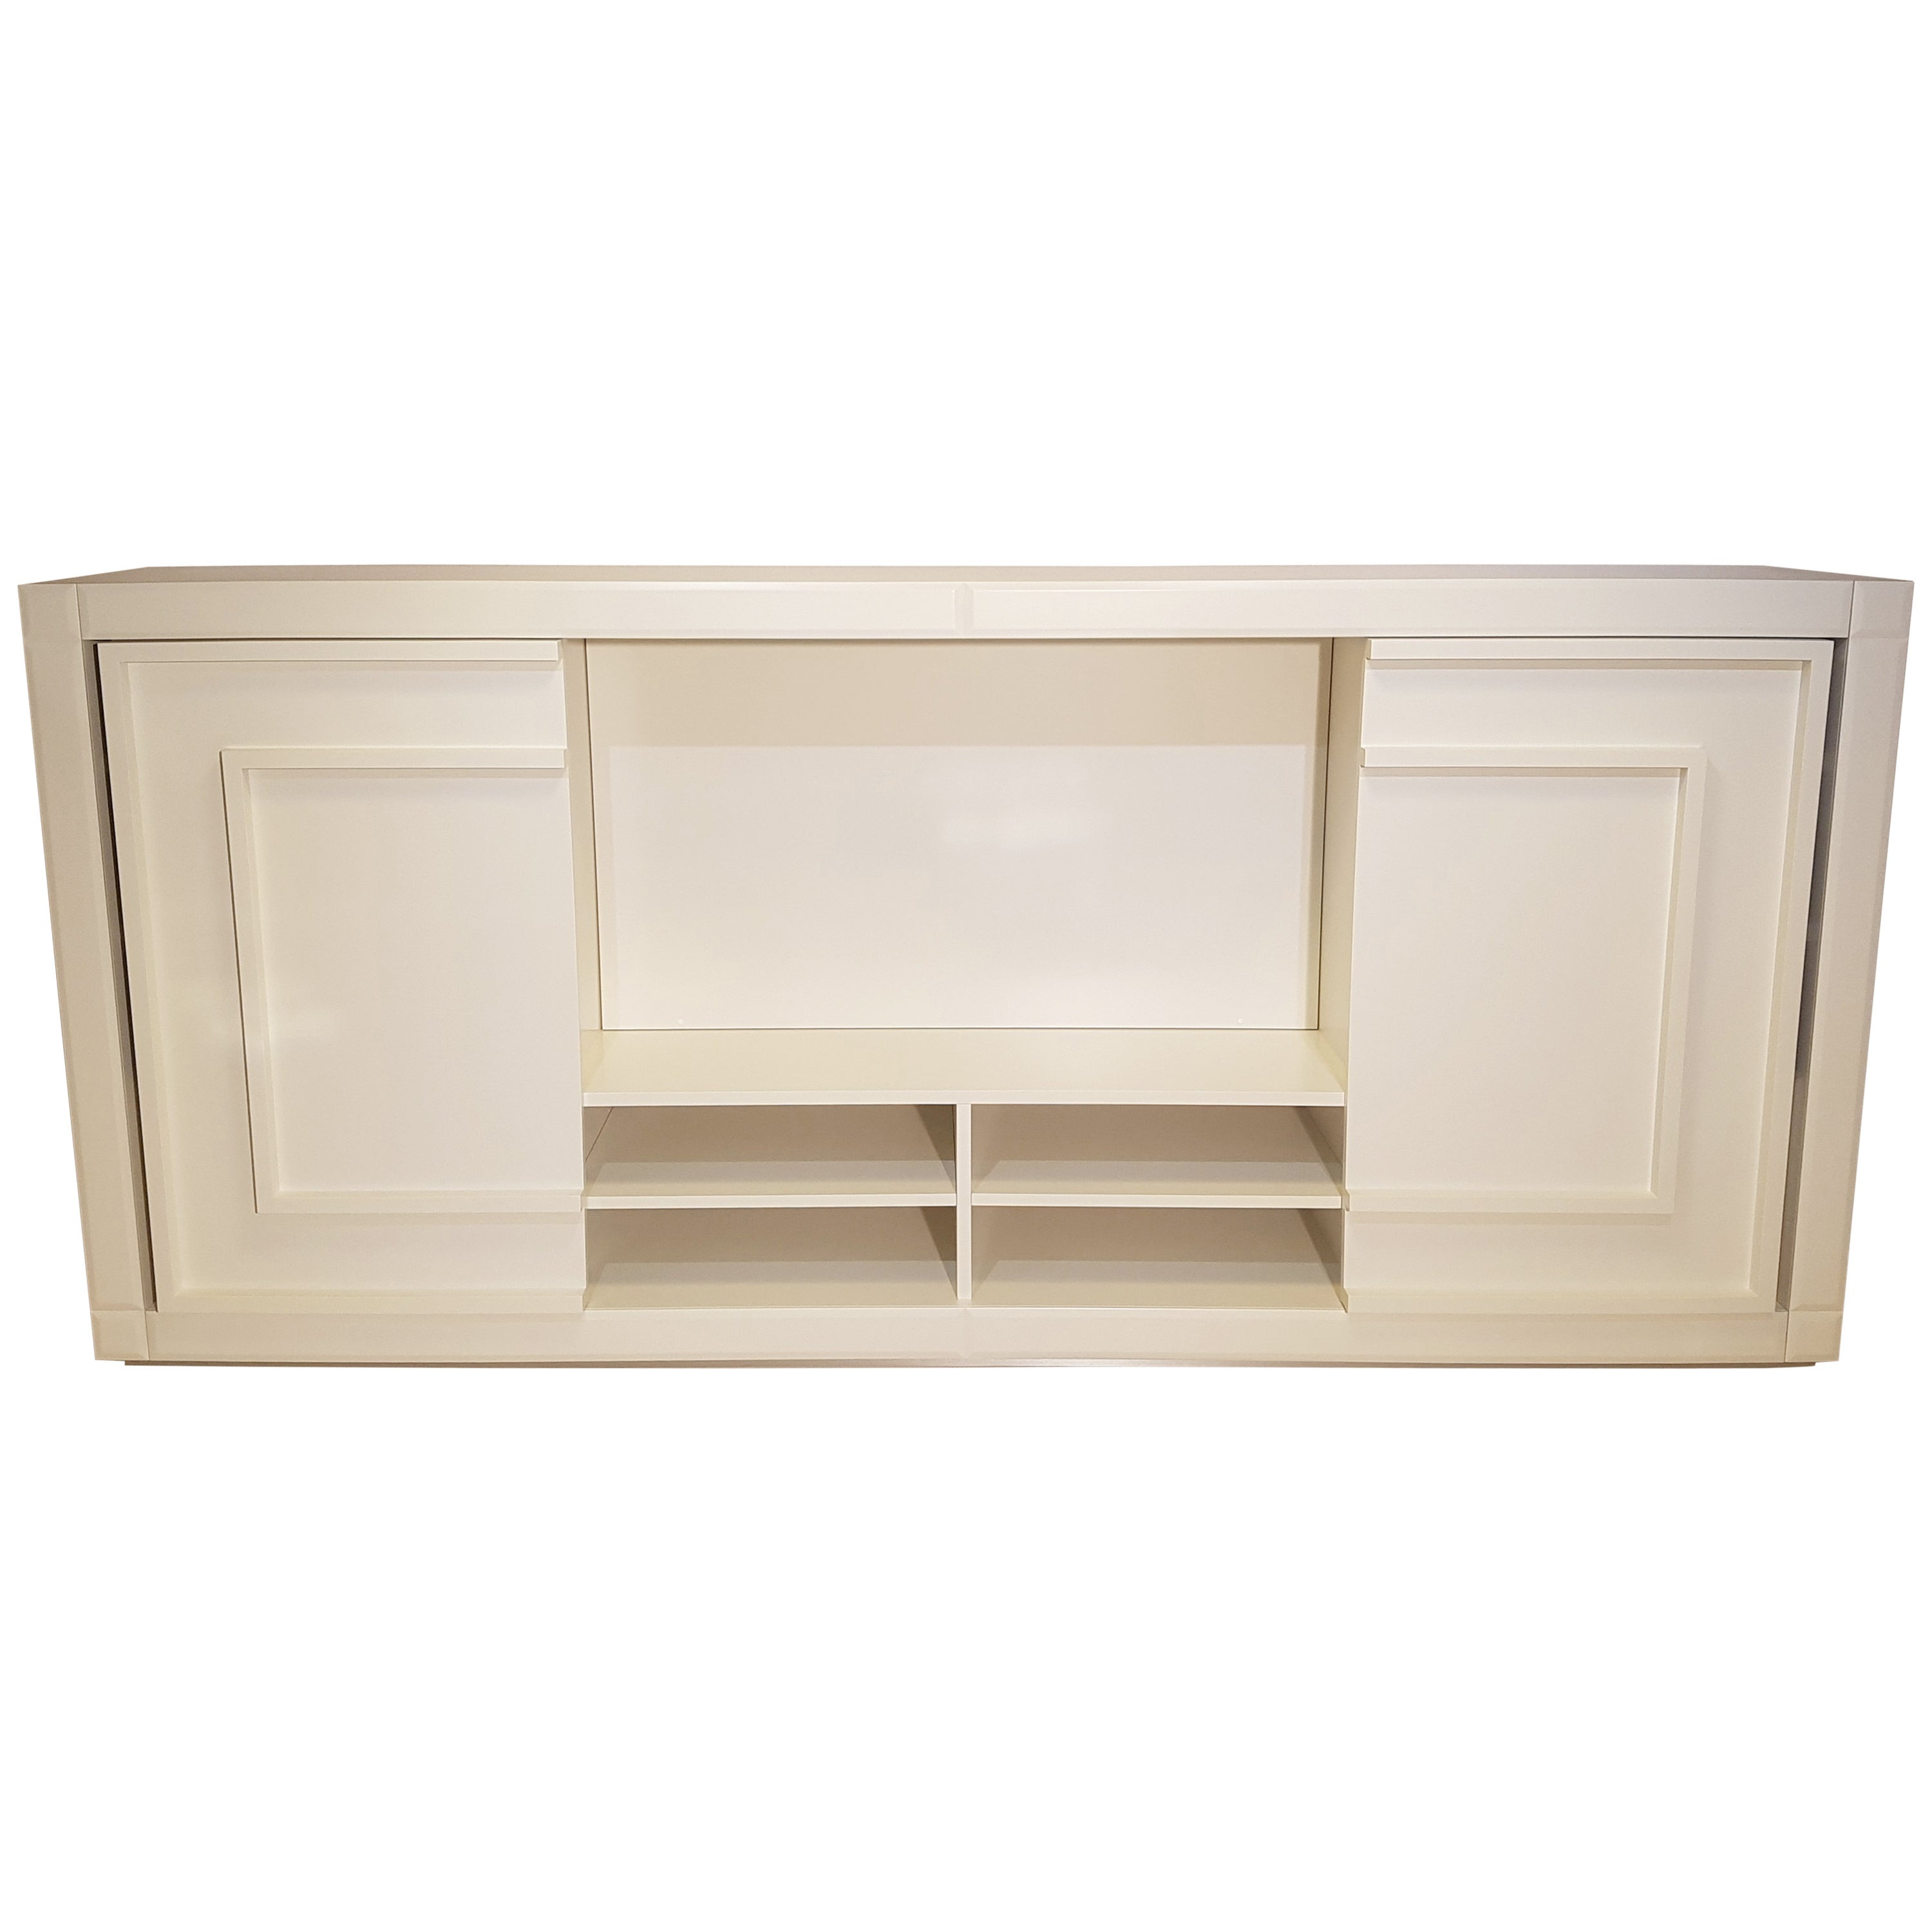 Design Tv Rack Cool Tv Rack With Tv Rack With Design Tv Rack Design Highboard Or Tv Rack In Matt White